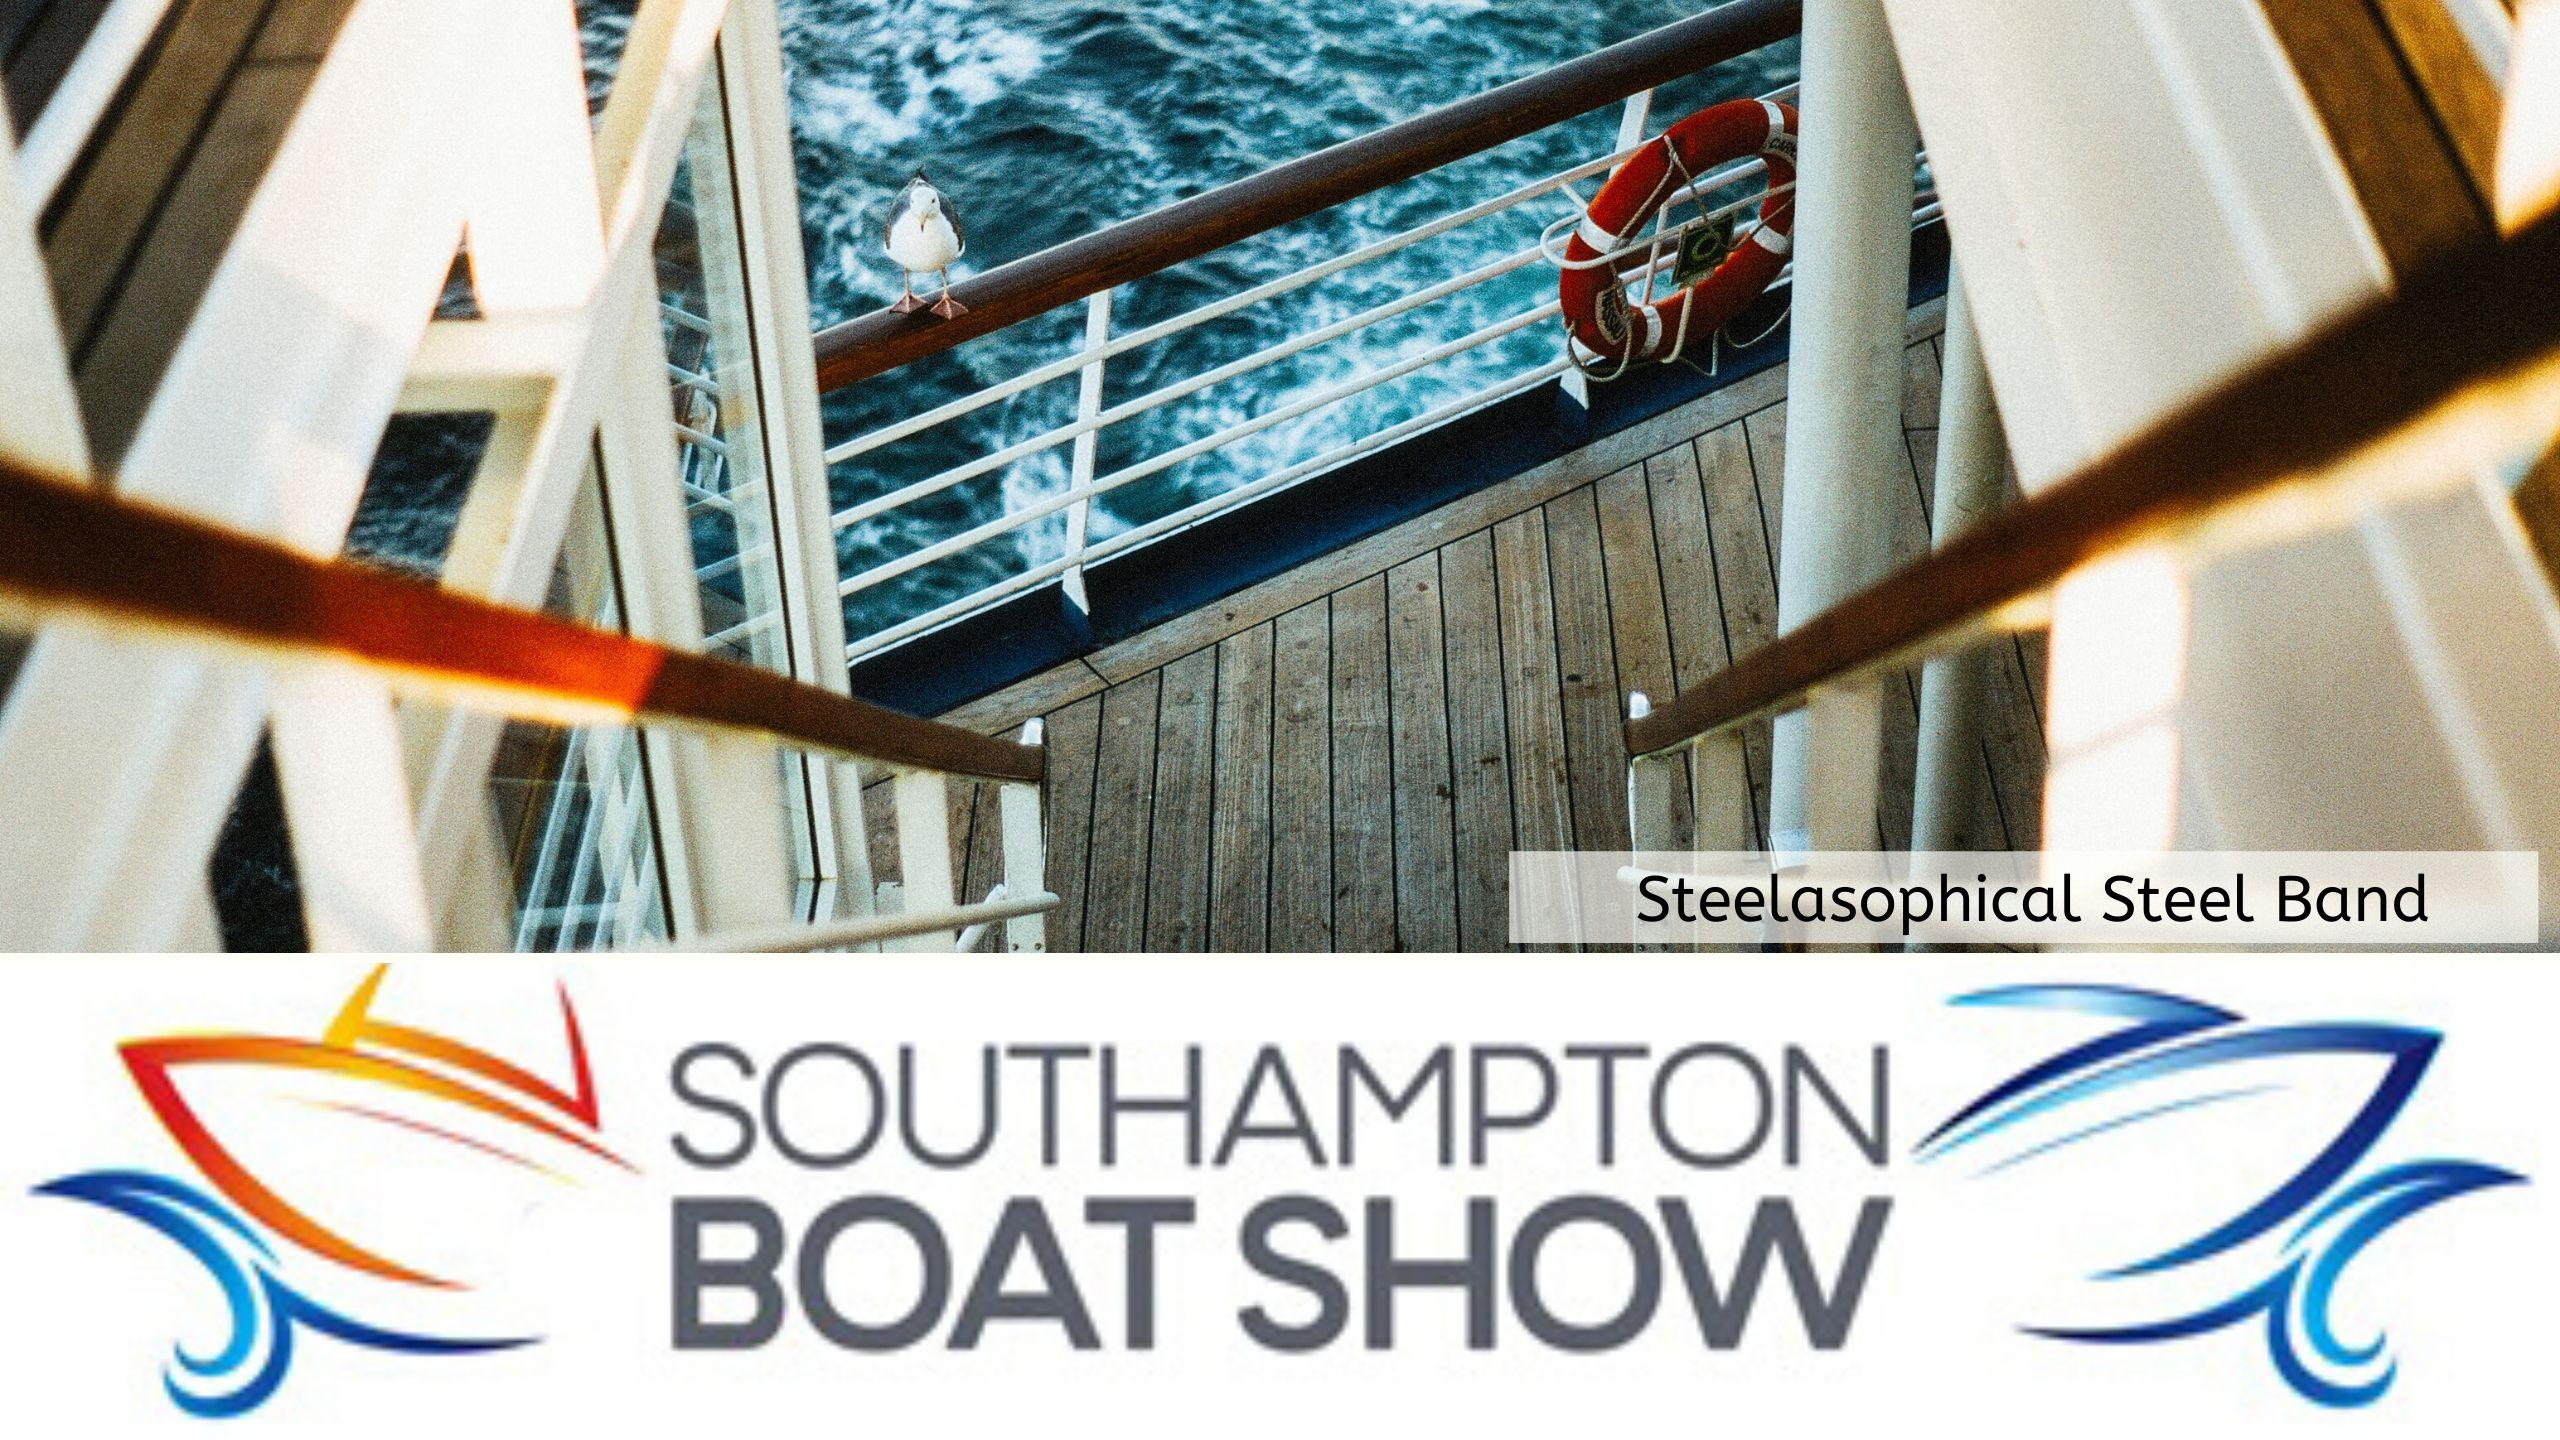 Steelasophical Steel Band Southampton Boat Show Yacht Market d3t